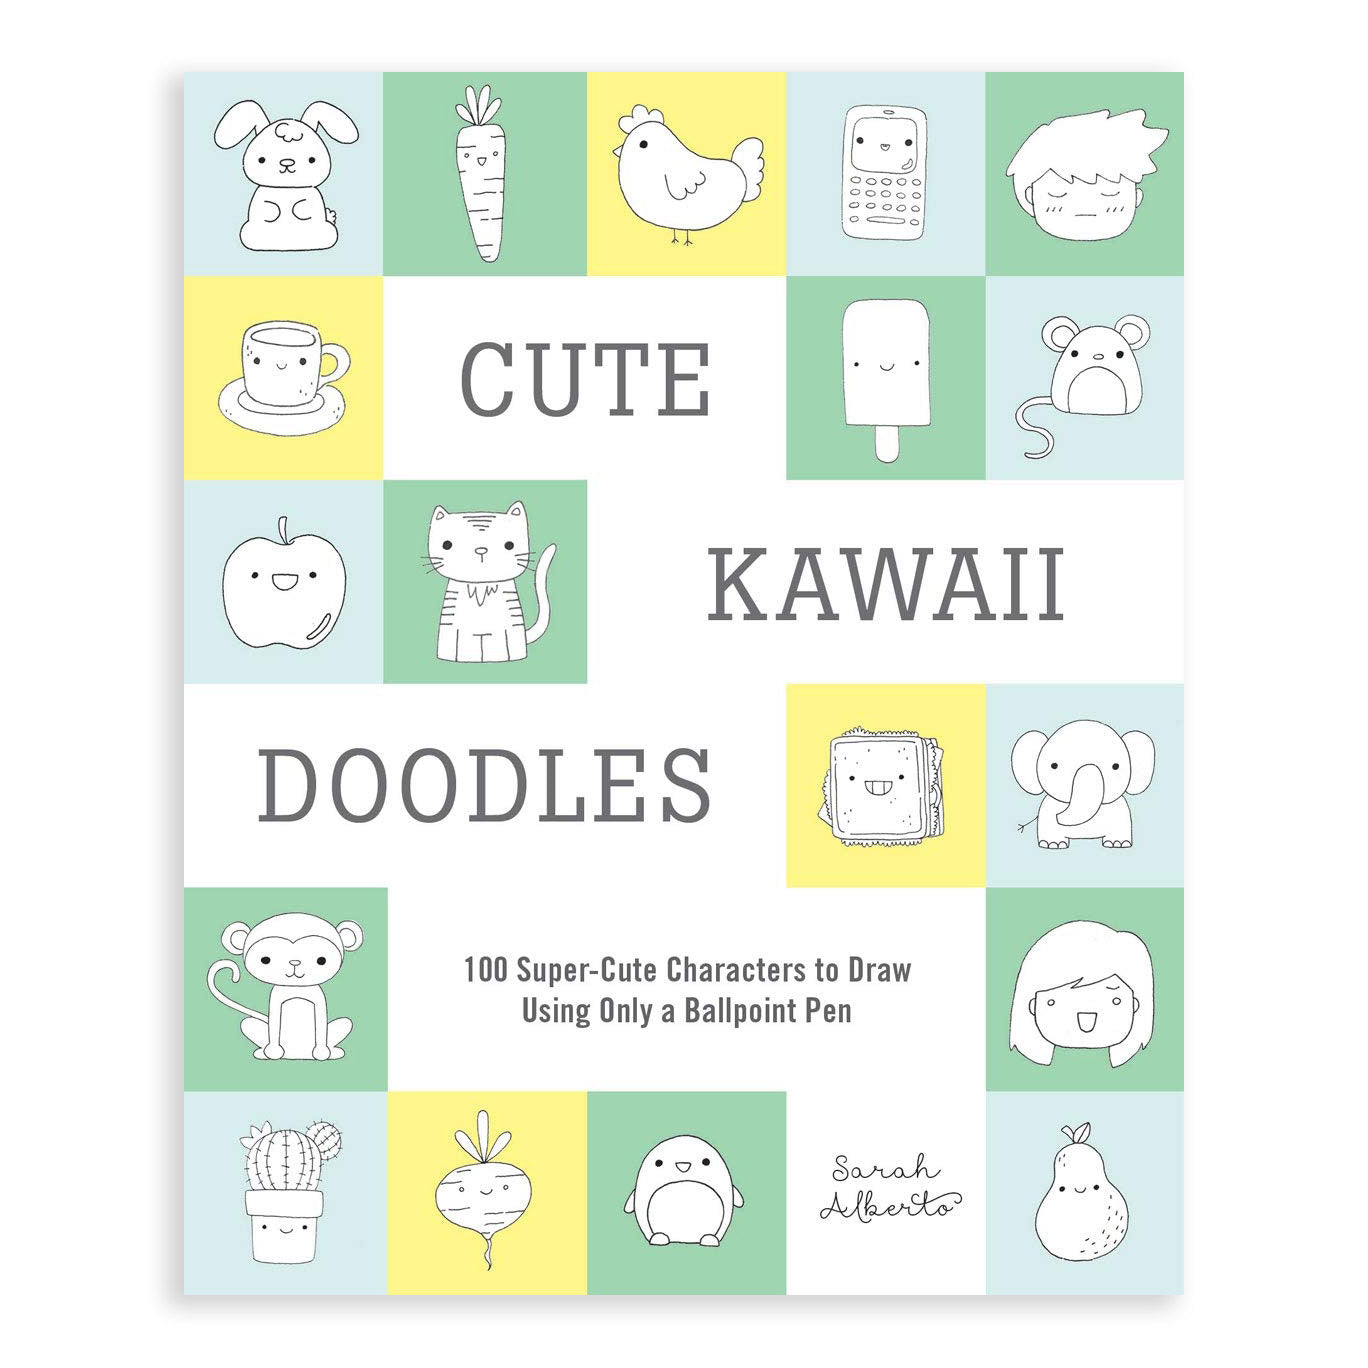 Cute Kawaii Doodles Guided Sketchbook by Abrams Books from Leanna Lin's Wonderland